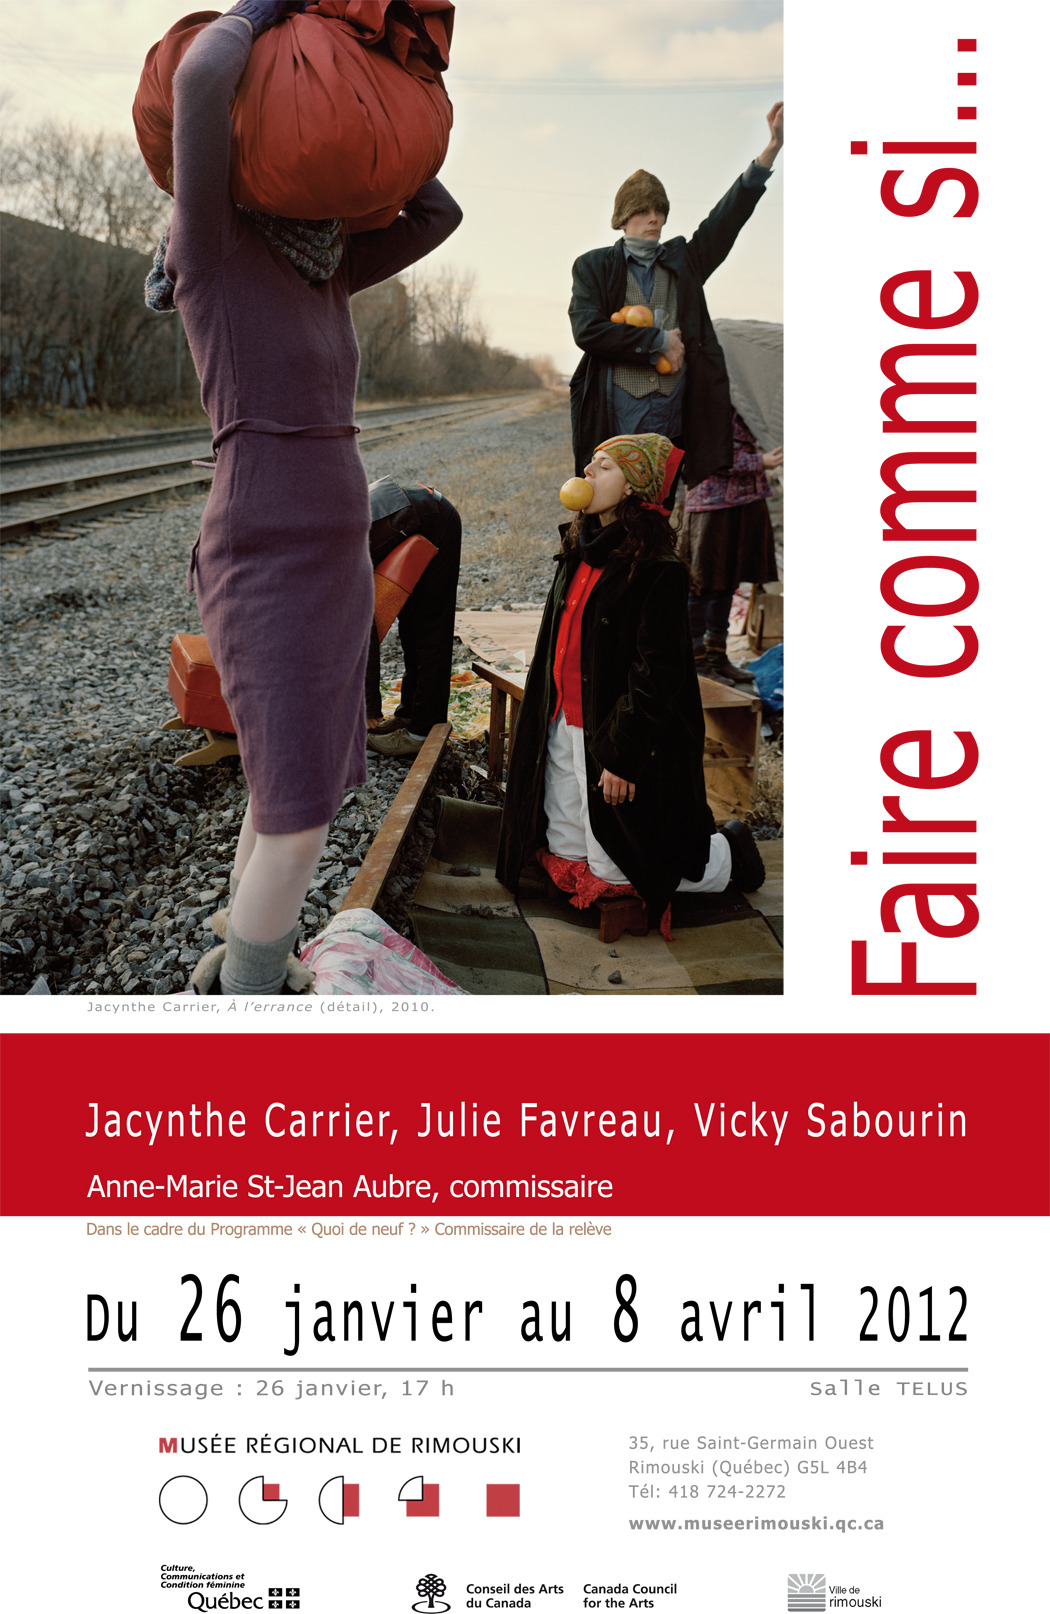 Faire Comme Si Exhibition curated by Anne-Marie St-Jean Aubre at the Musée Régional de Rimouski artists: Jacynthe Carrier, Julie Favreau, Vicky Sabourin http://museerimouski.qc.ca/expositions/faire-comme-si/